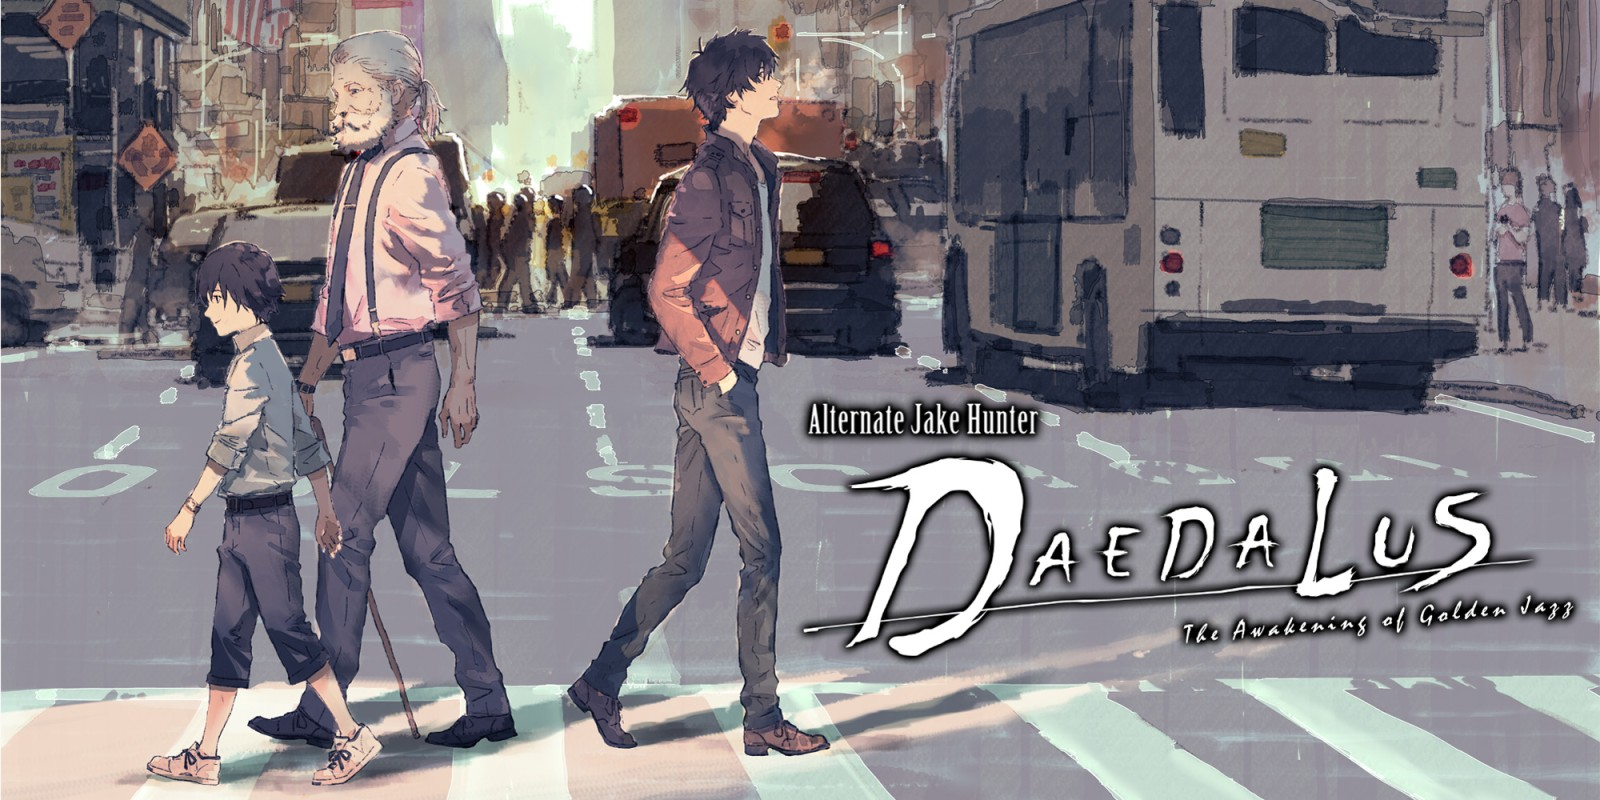 Alternate Jake Hunter: DAEDALUS The Awakening of Golden Jazz